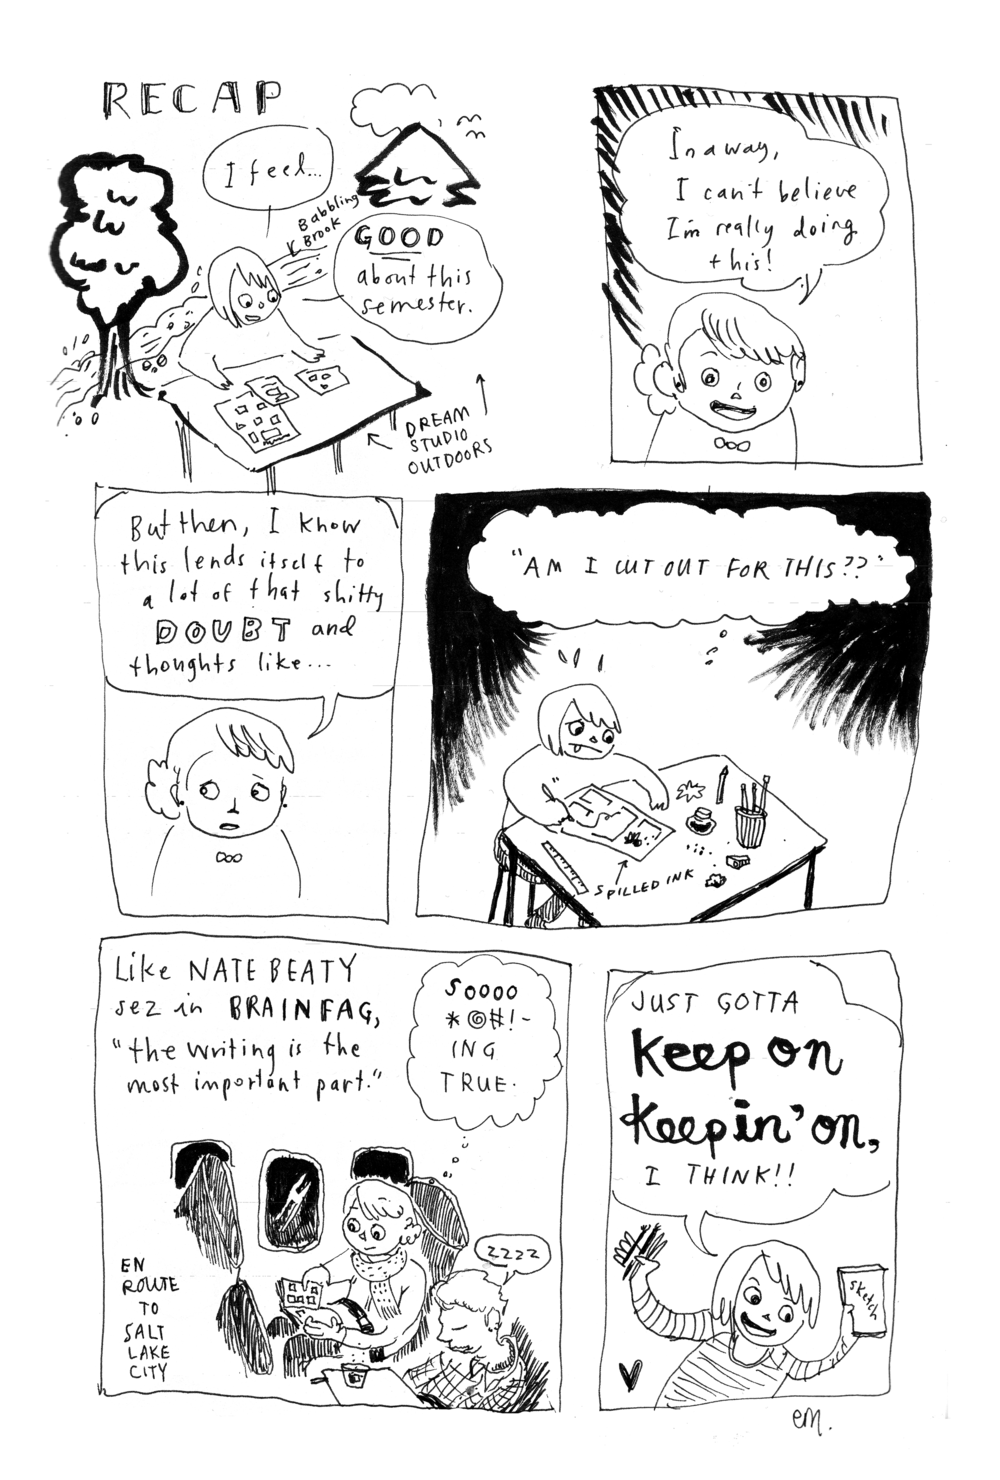 Recap  comic sketch, 2014